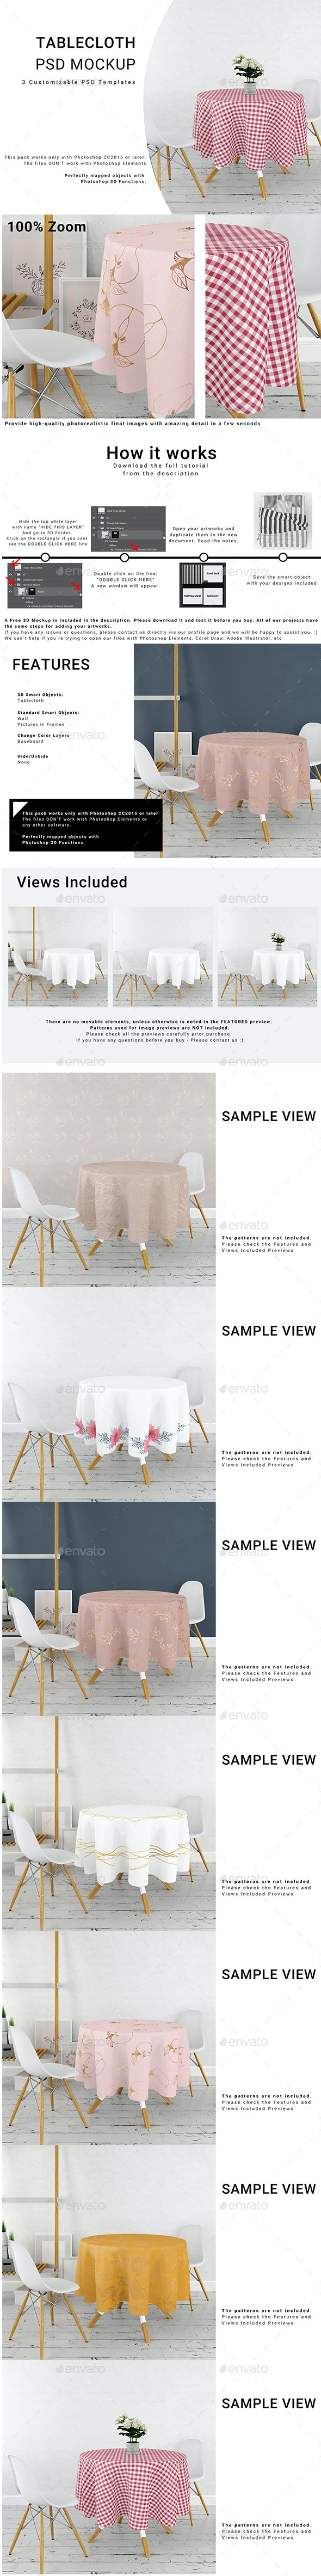 Round Tablecloth in Kitchen Mockup Set - Print Product Mock-Ups